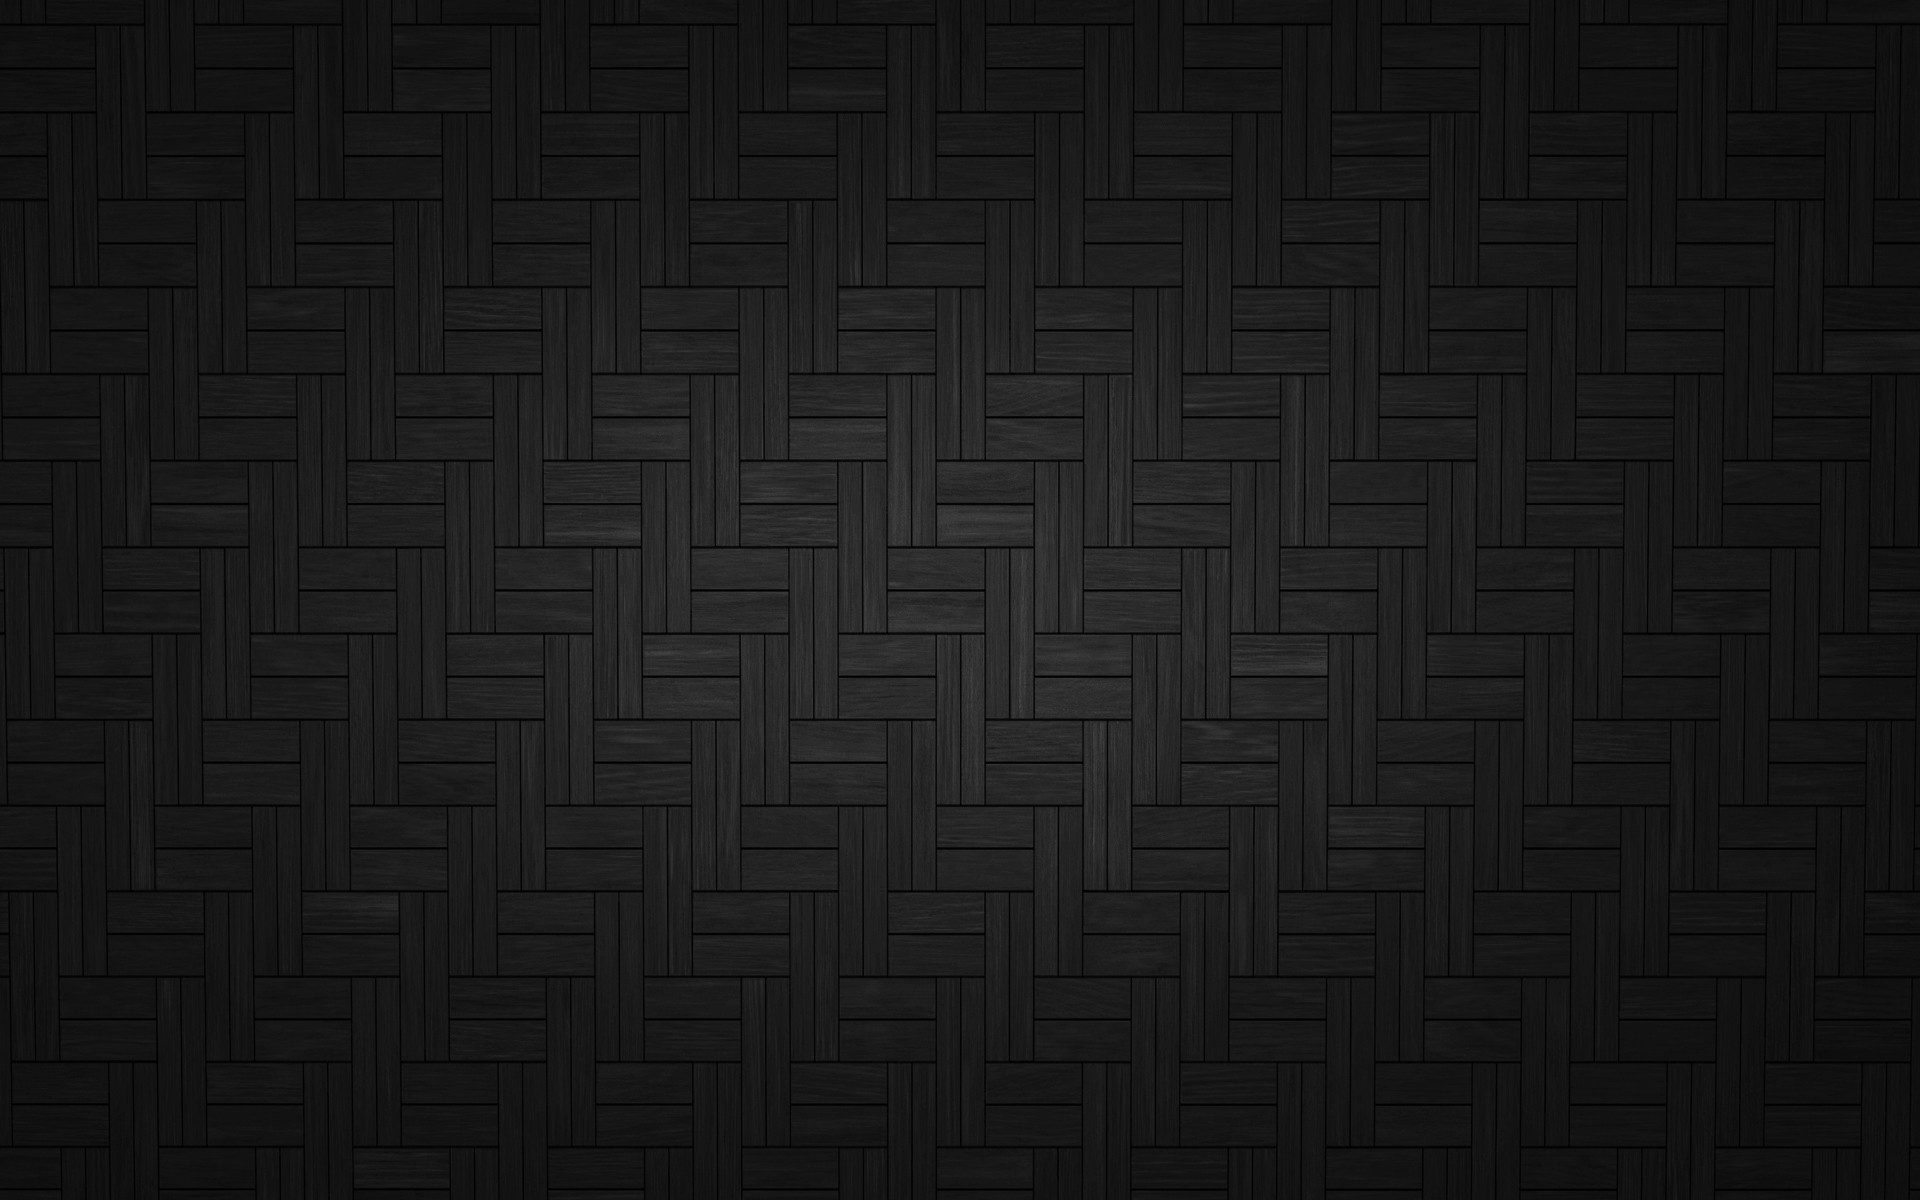 Best 25 Wallpapers Ipad Ideas On Pinterest: Black Textured Background ·① Download Free Amazing Full HD